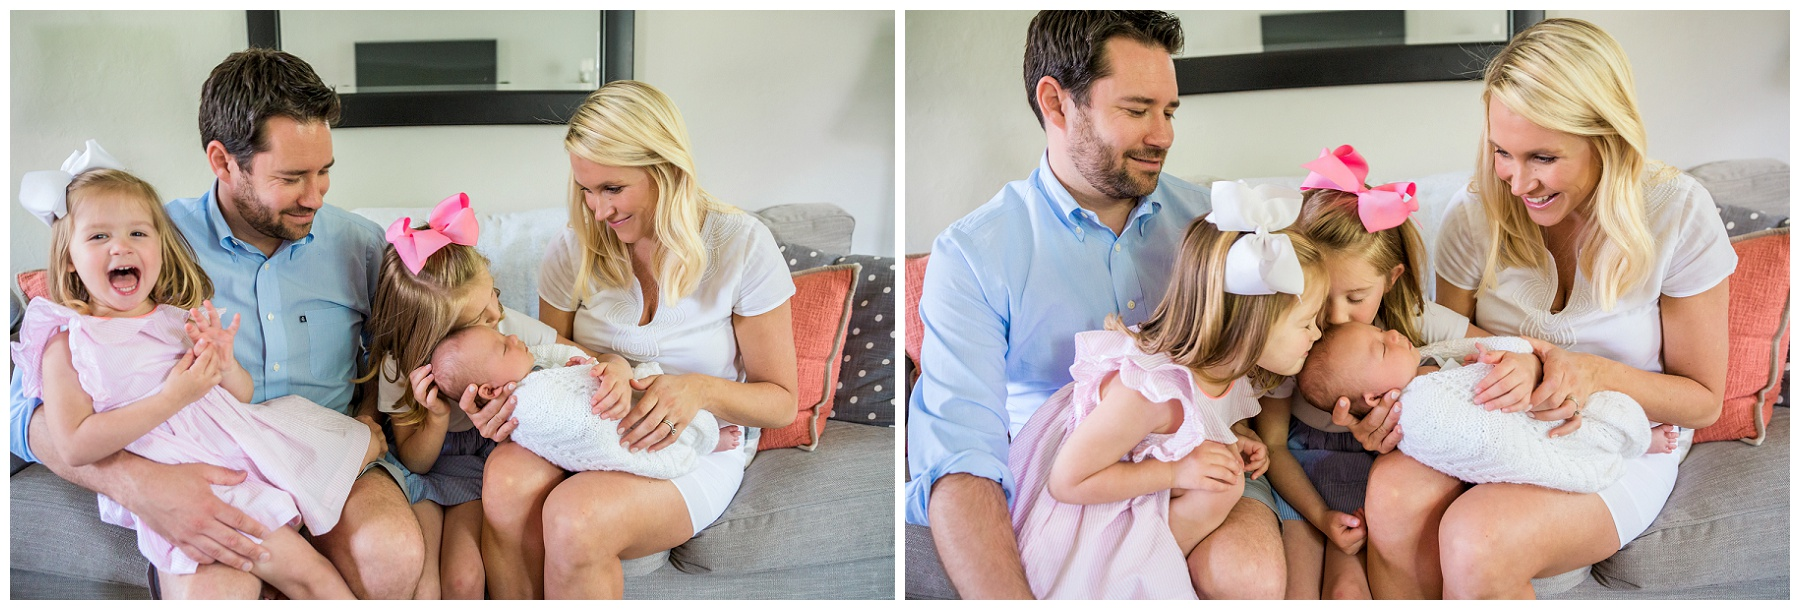 St Louis Newborn Photographer_Susie Vreeland Photography__Wood Family__2018 (4).jpg